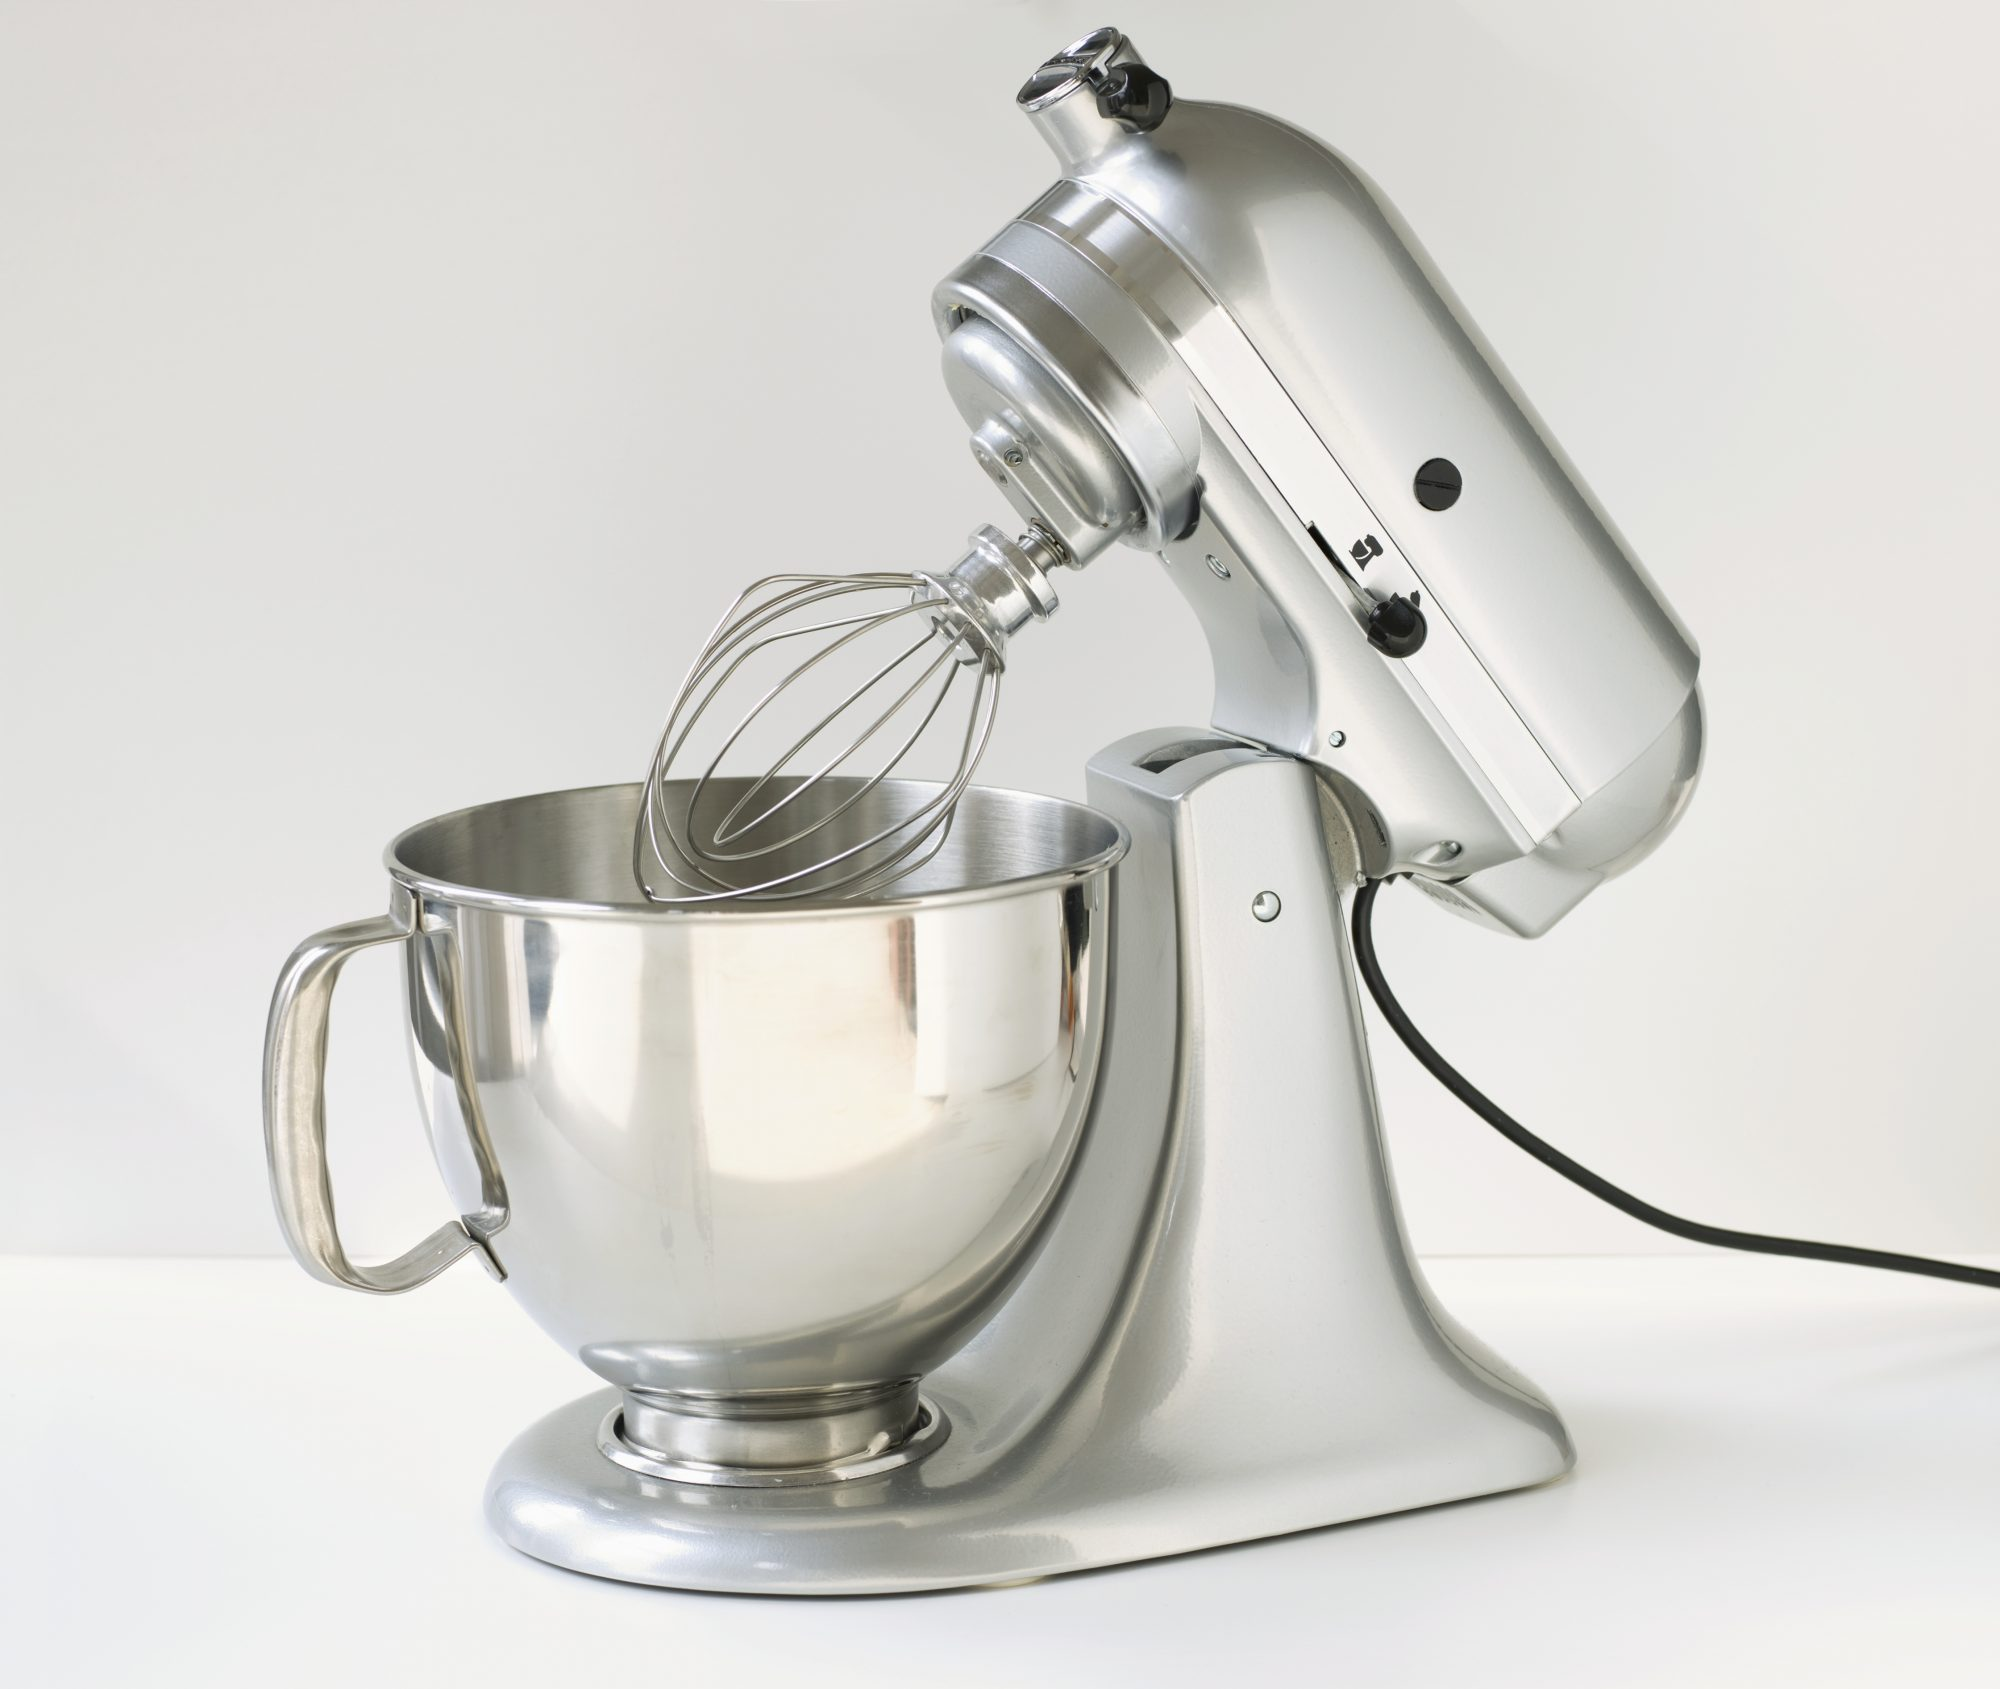 What You Should Consider When Purchasing Your First Kitchenaid